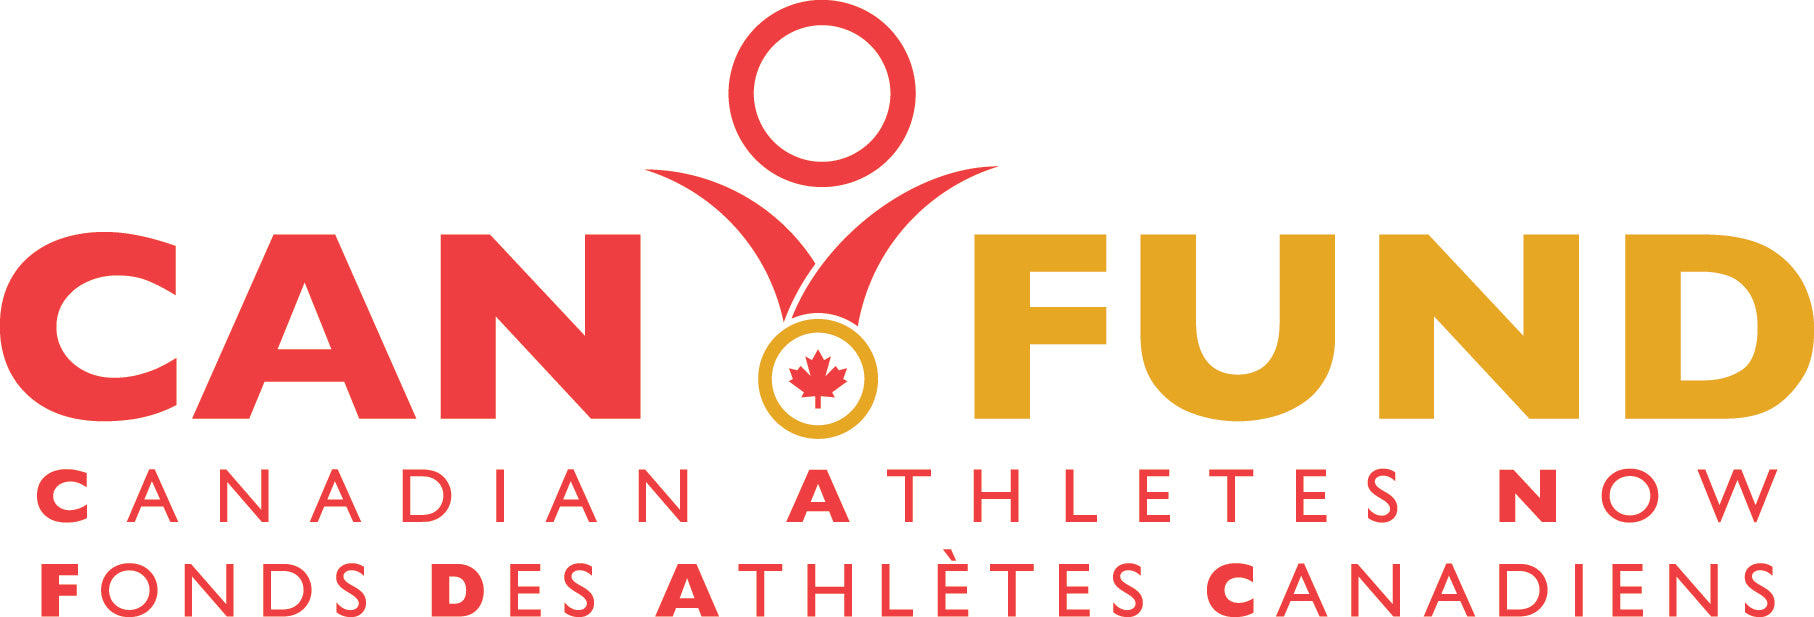 Canadian Athletes Now Fund Logo Donate in support of Virtual Cycle Mission